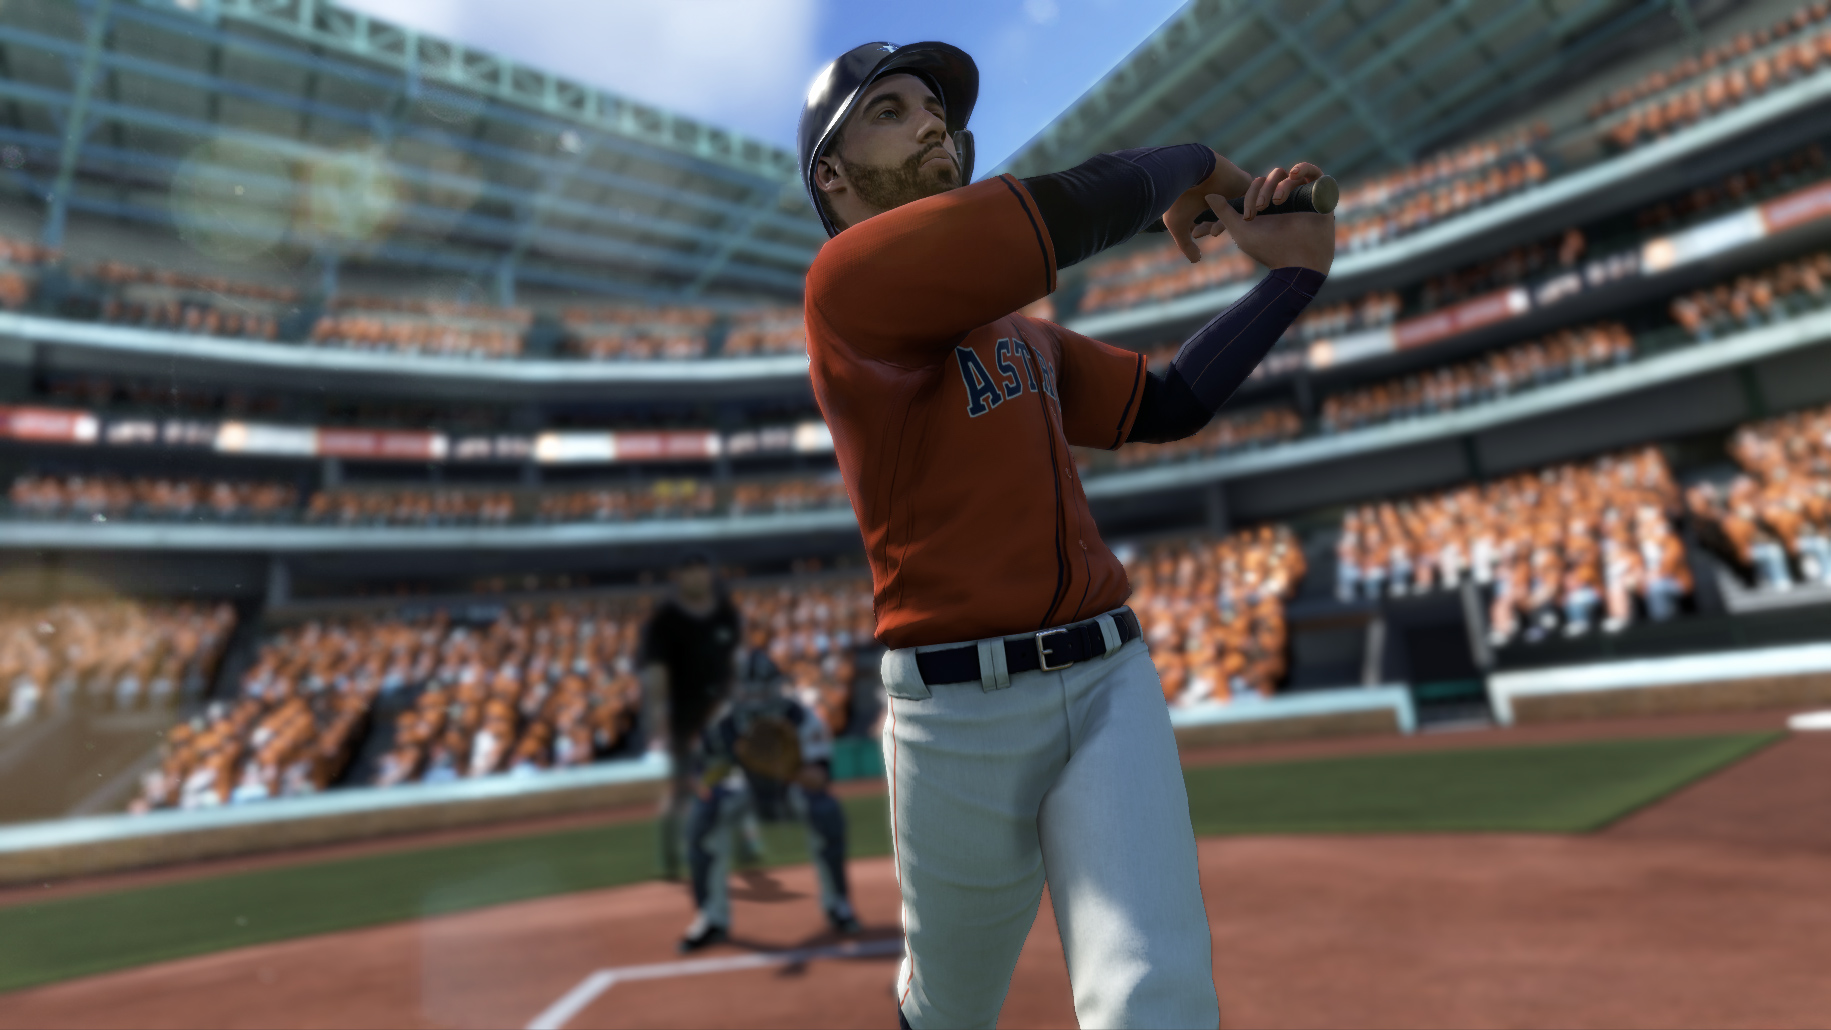 Exclusive Why MLB Decided To Develop RBI Baseball 18